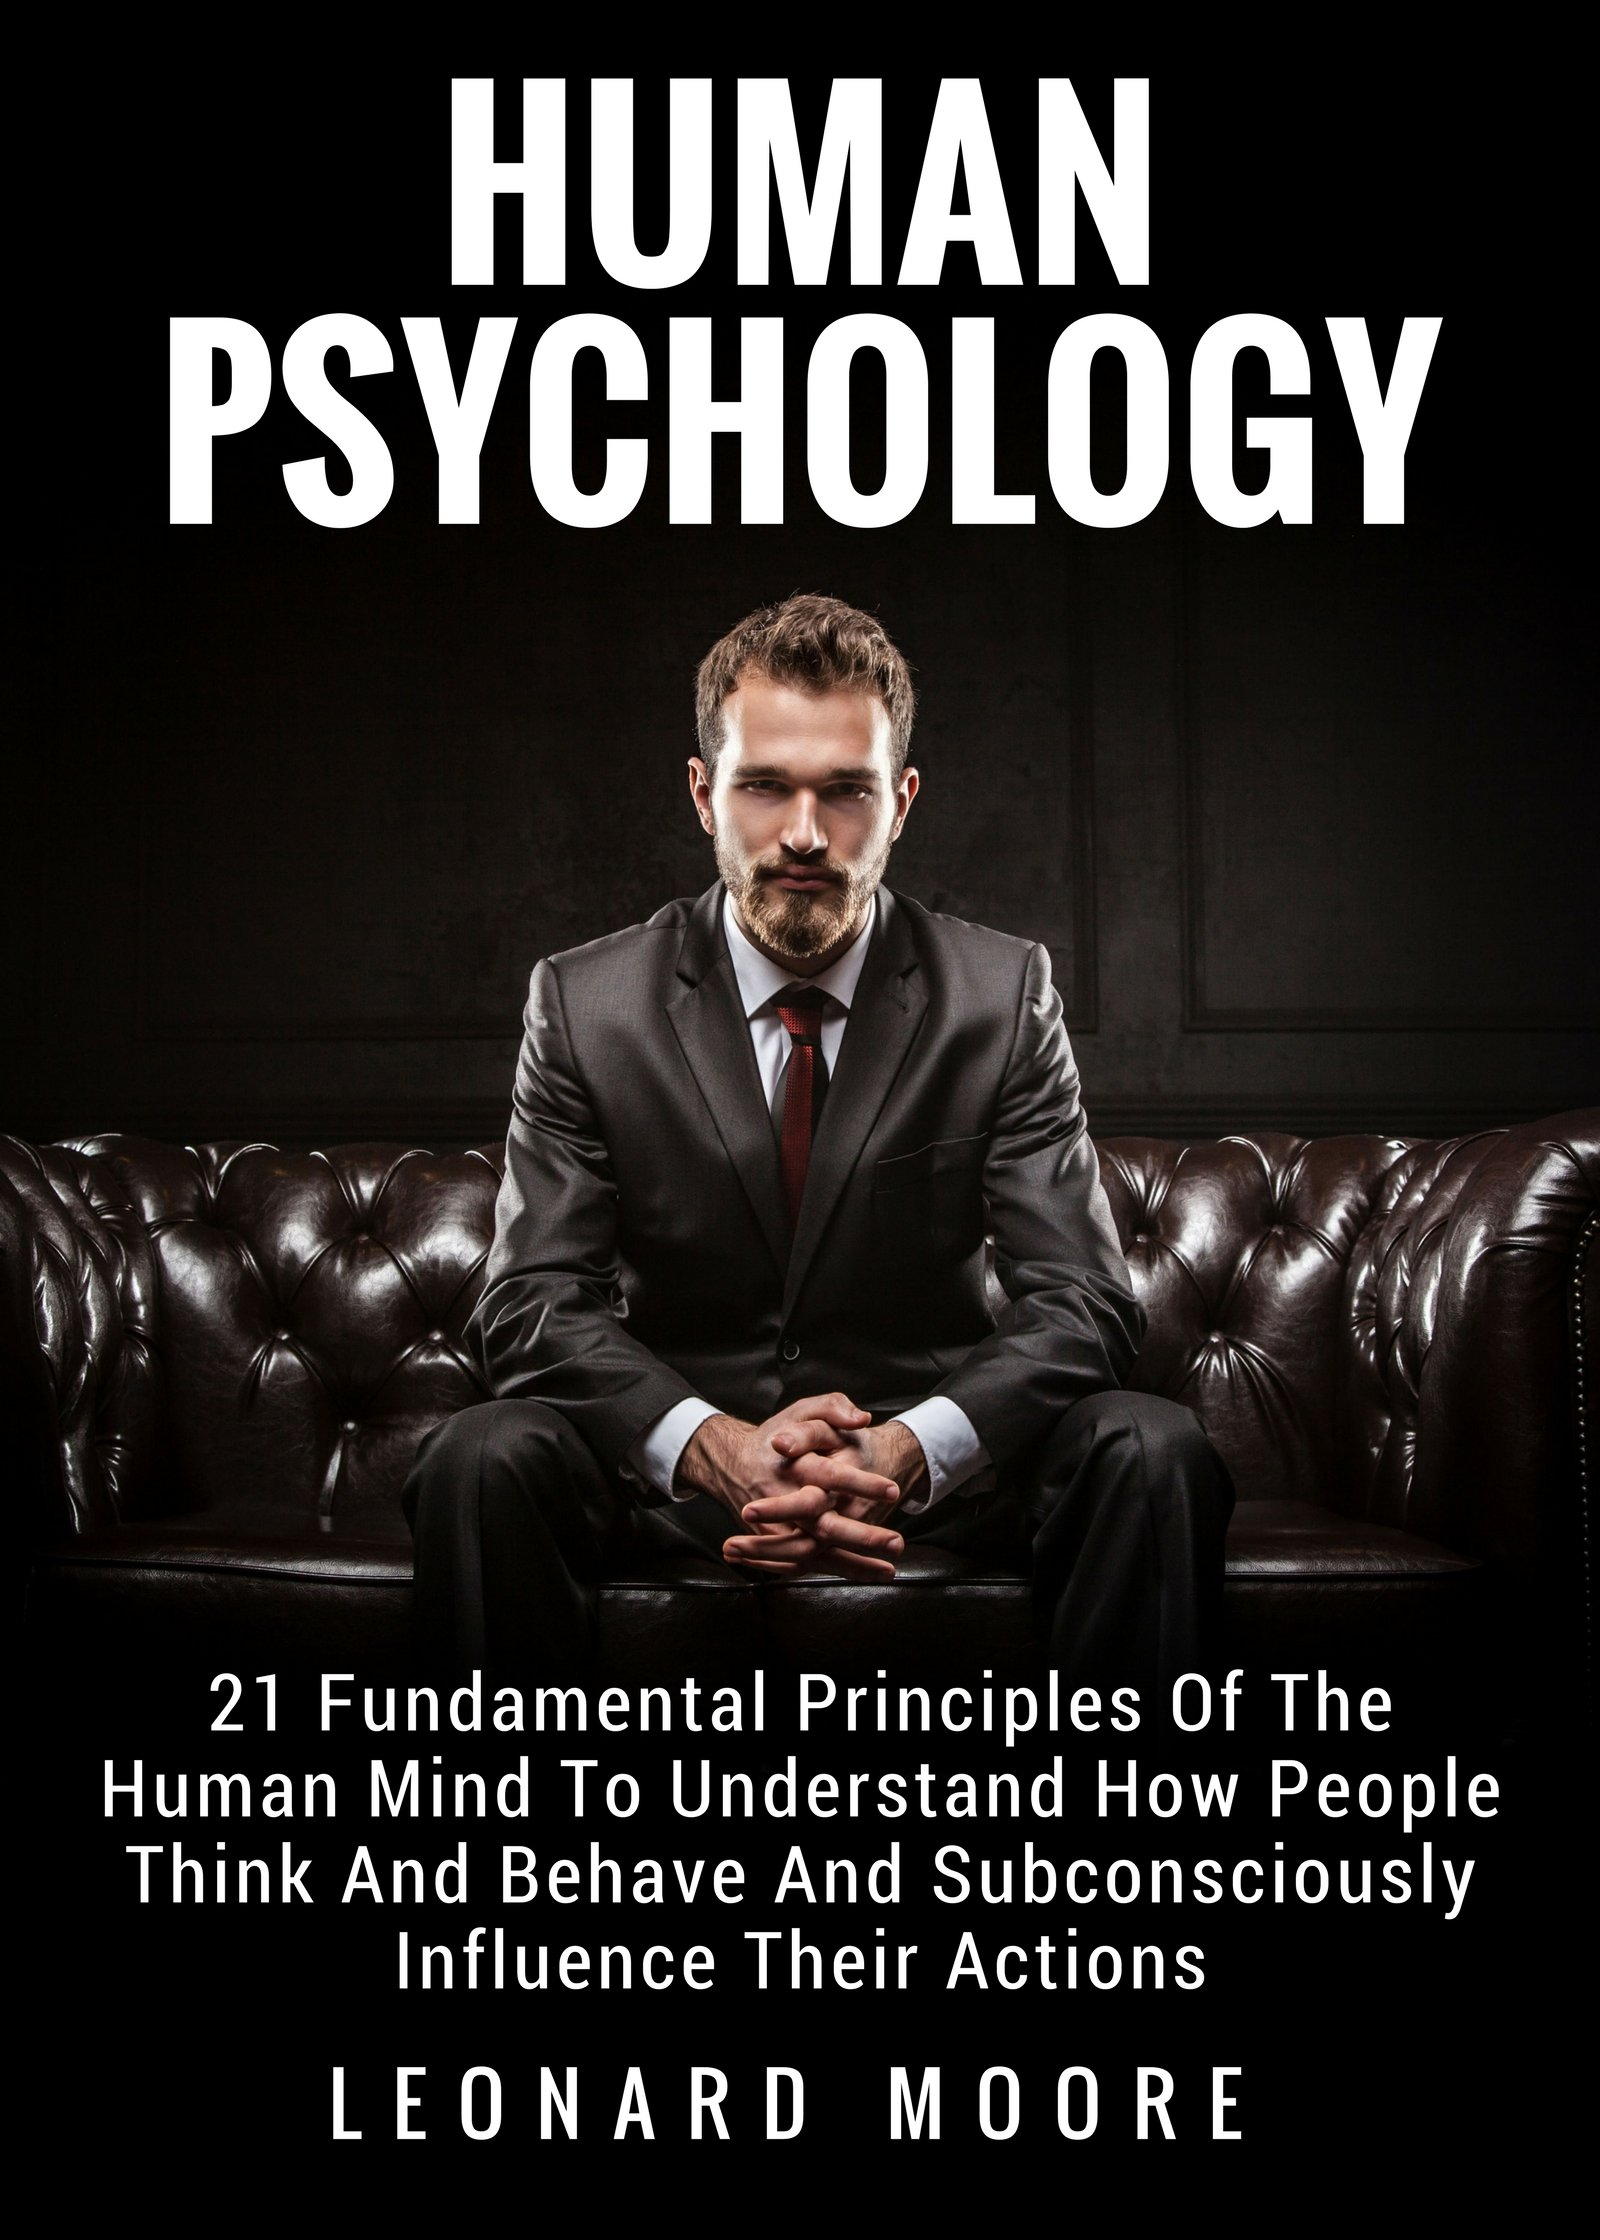 Human Psychology  21 Fundamental Principles Of The Human Mind To Understand How People Think And Behave And Subconsciously Influence Their Actions  English Edition